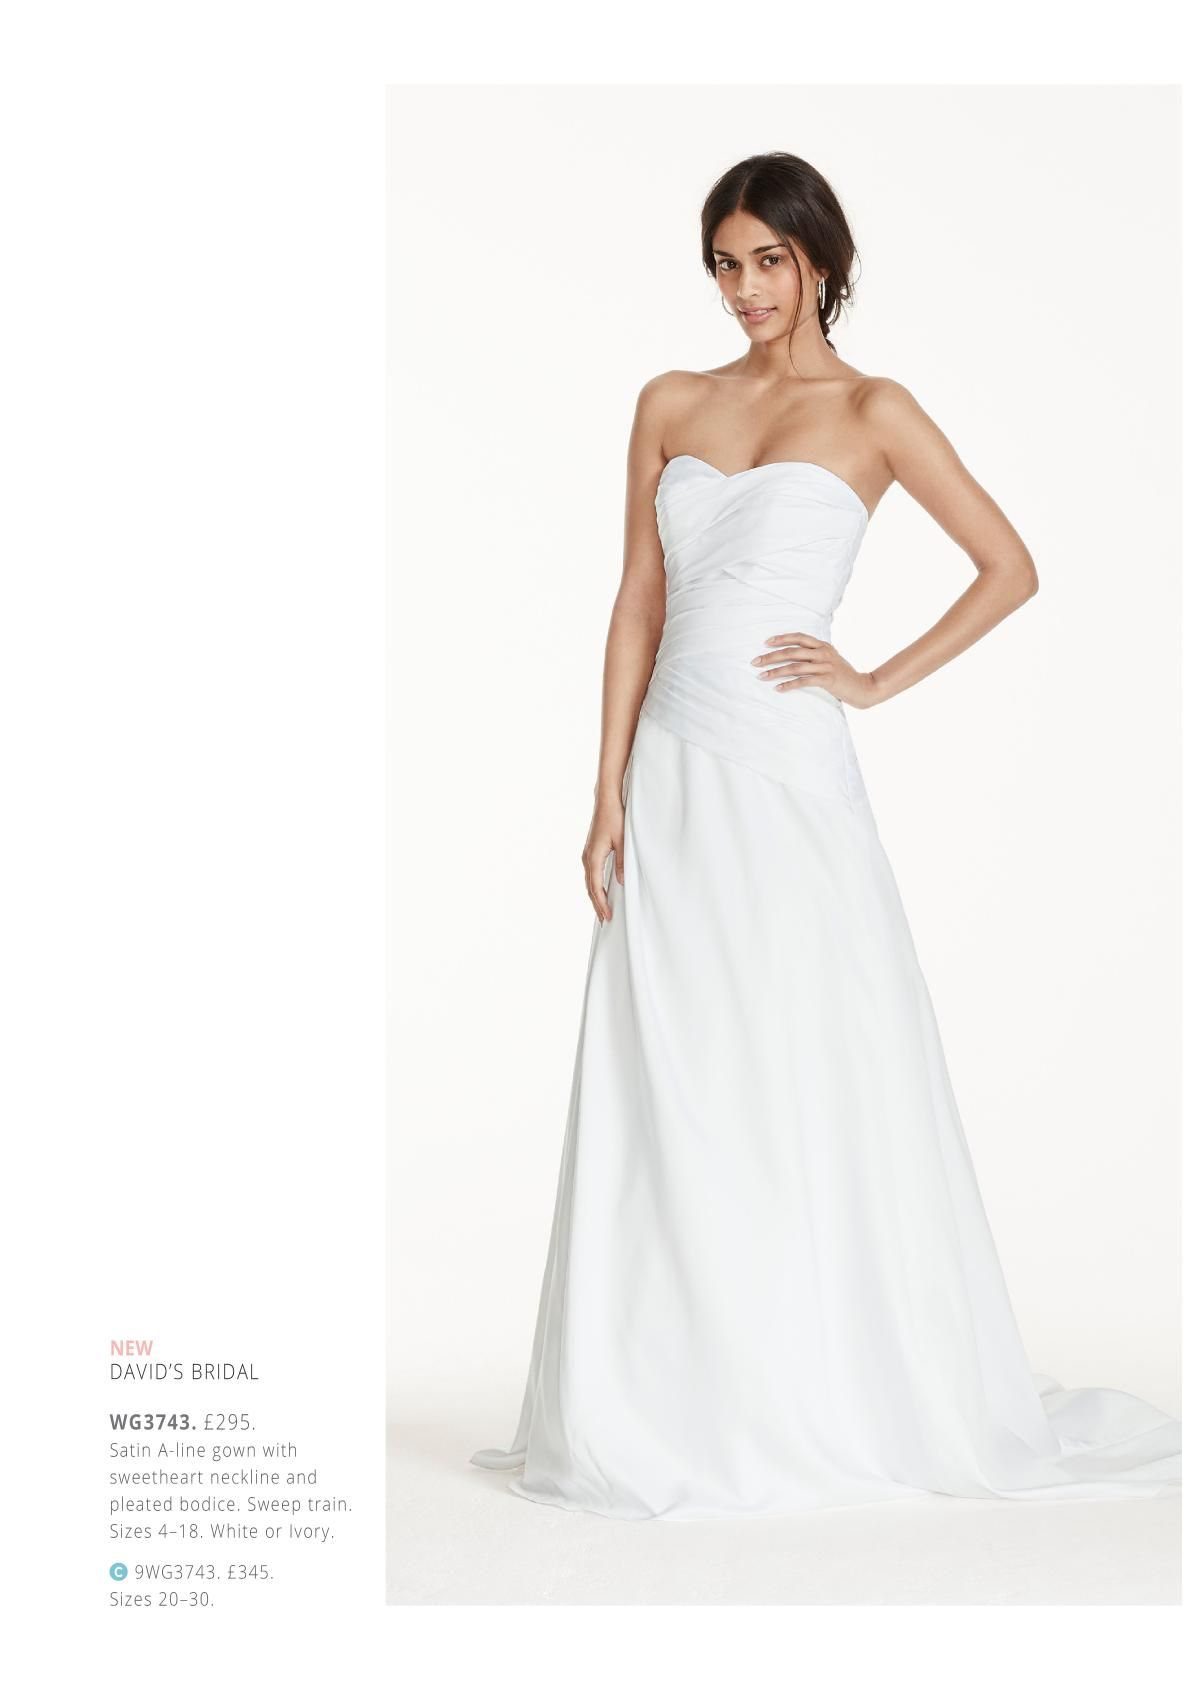 Davidus bridal online catalog greek wedding pinterest greek